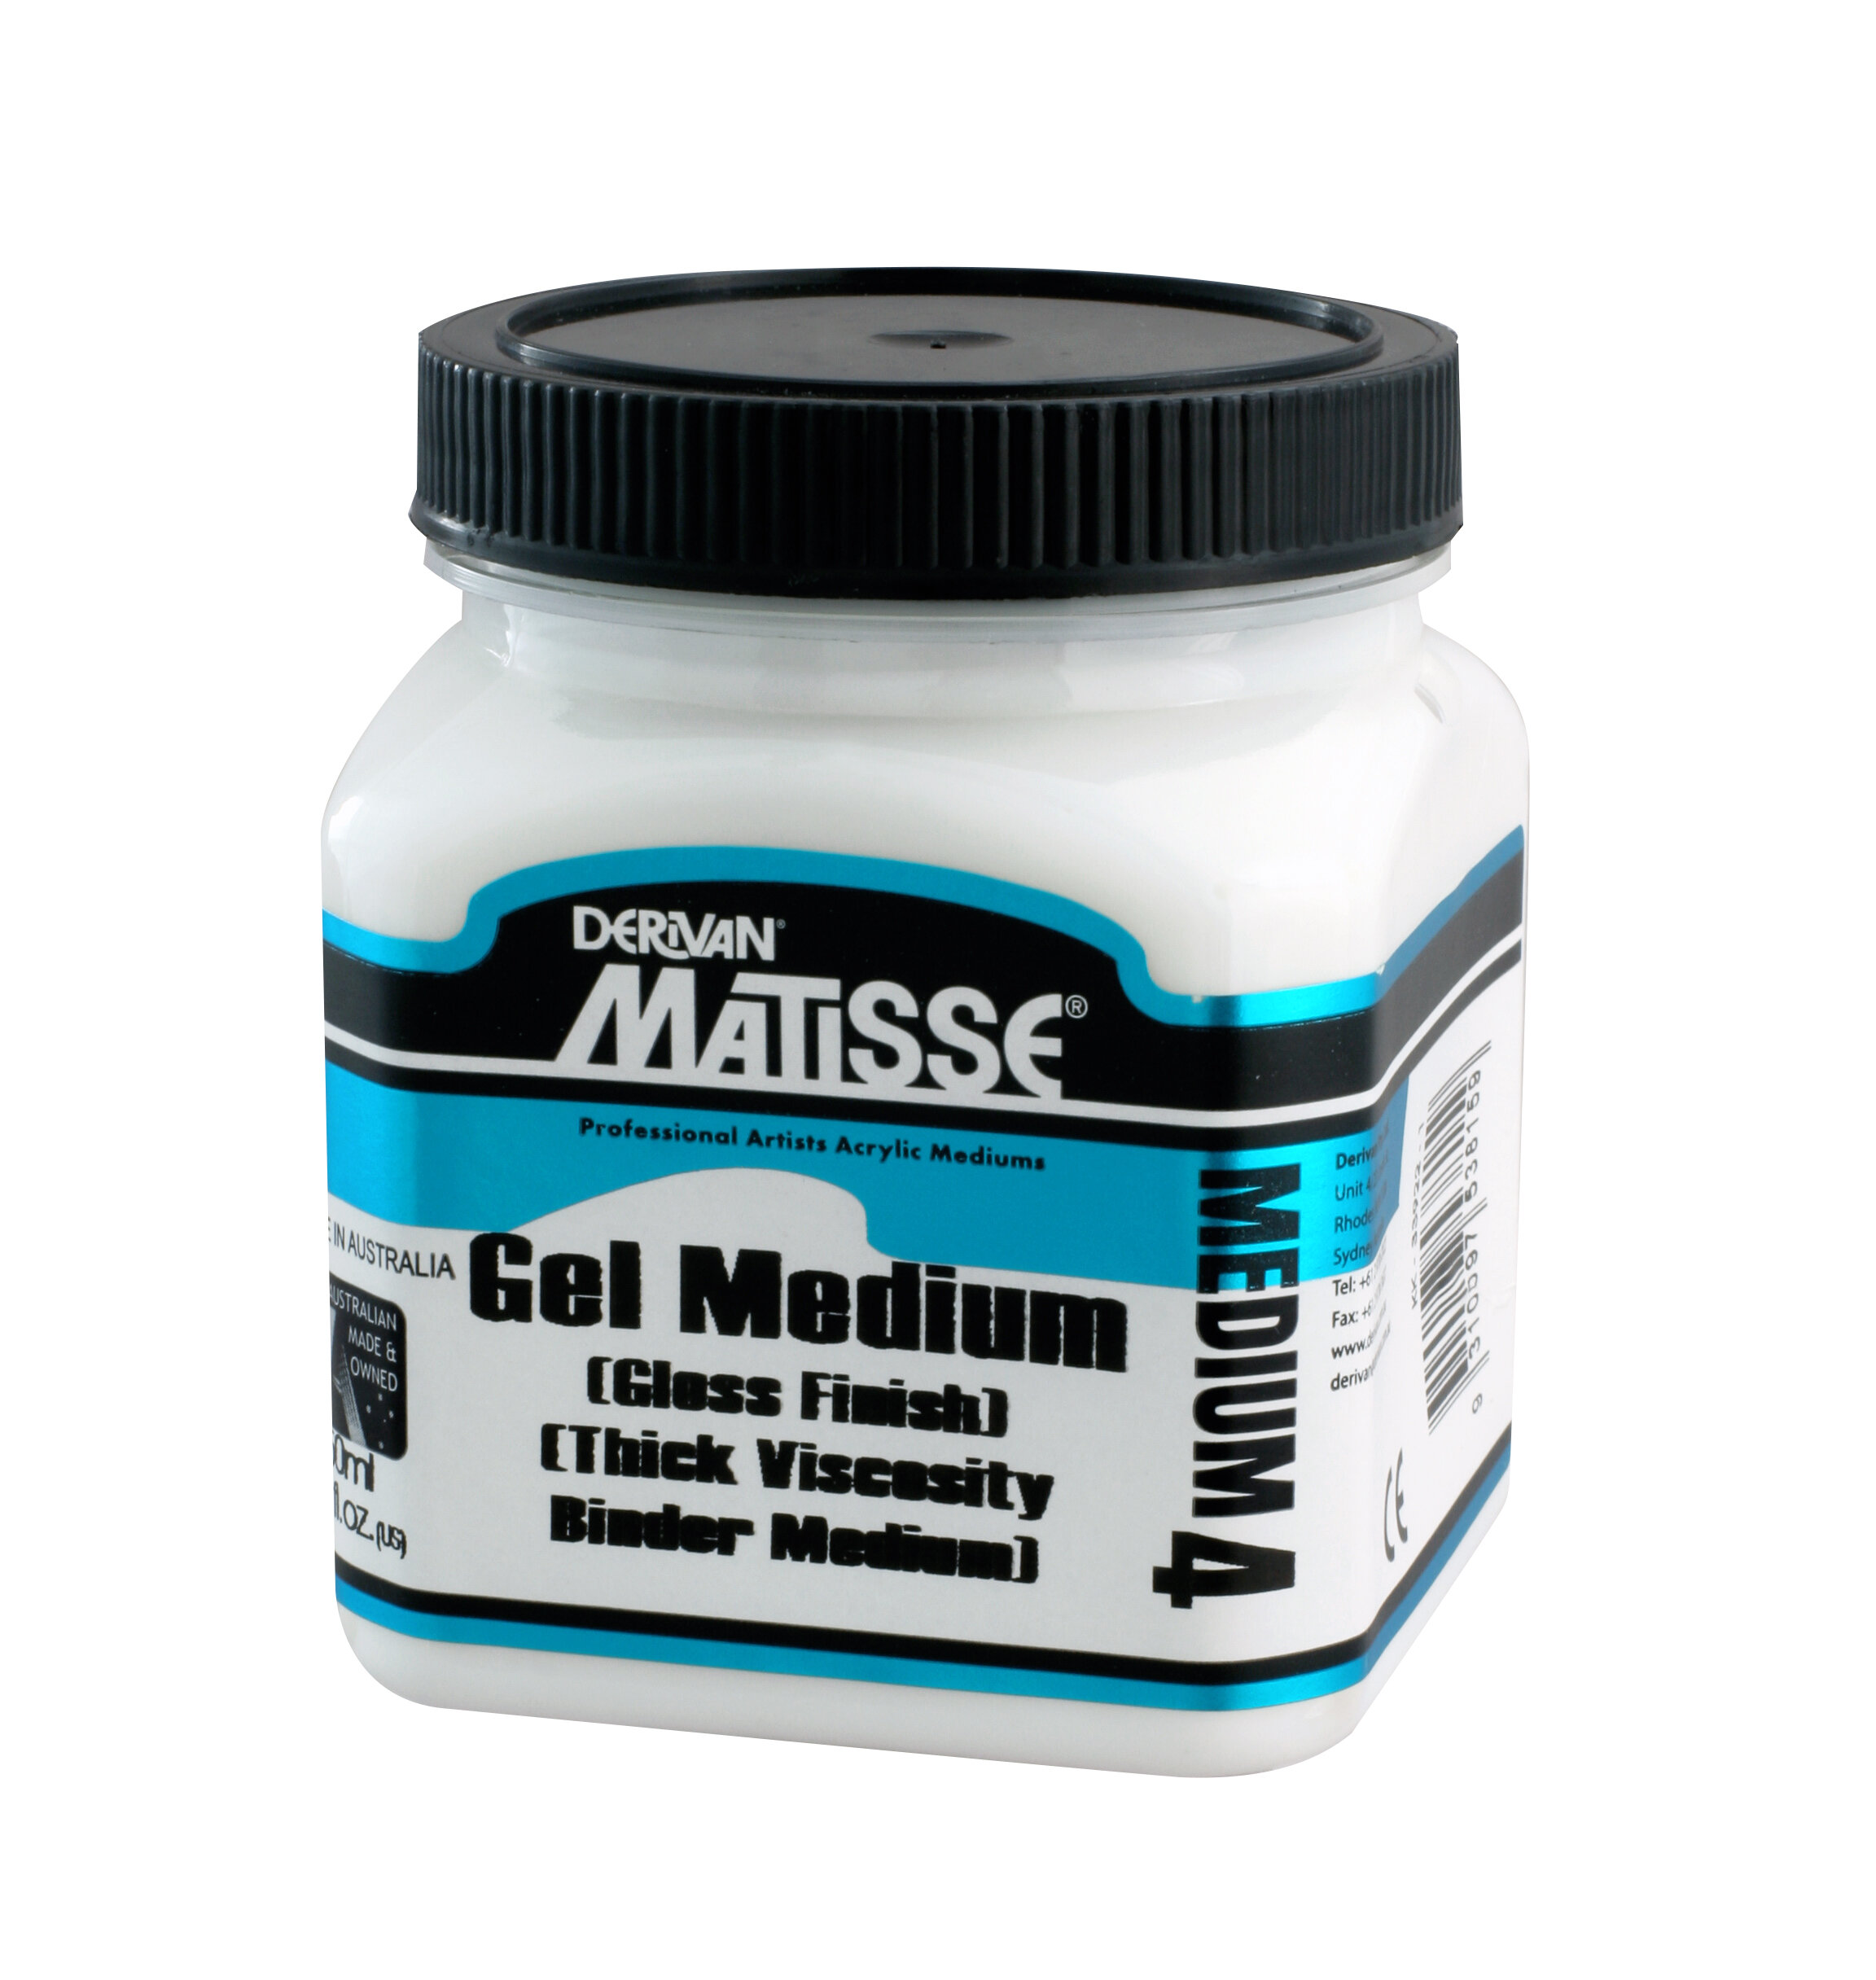 MM4 Gel Medium (Gloss Finish) - ———————Dries clear or mixes with Matisse colours to give a 3D high-gloss glaze.